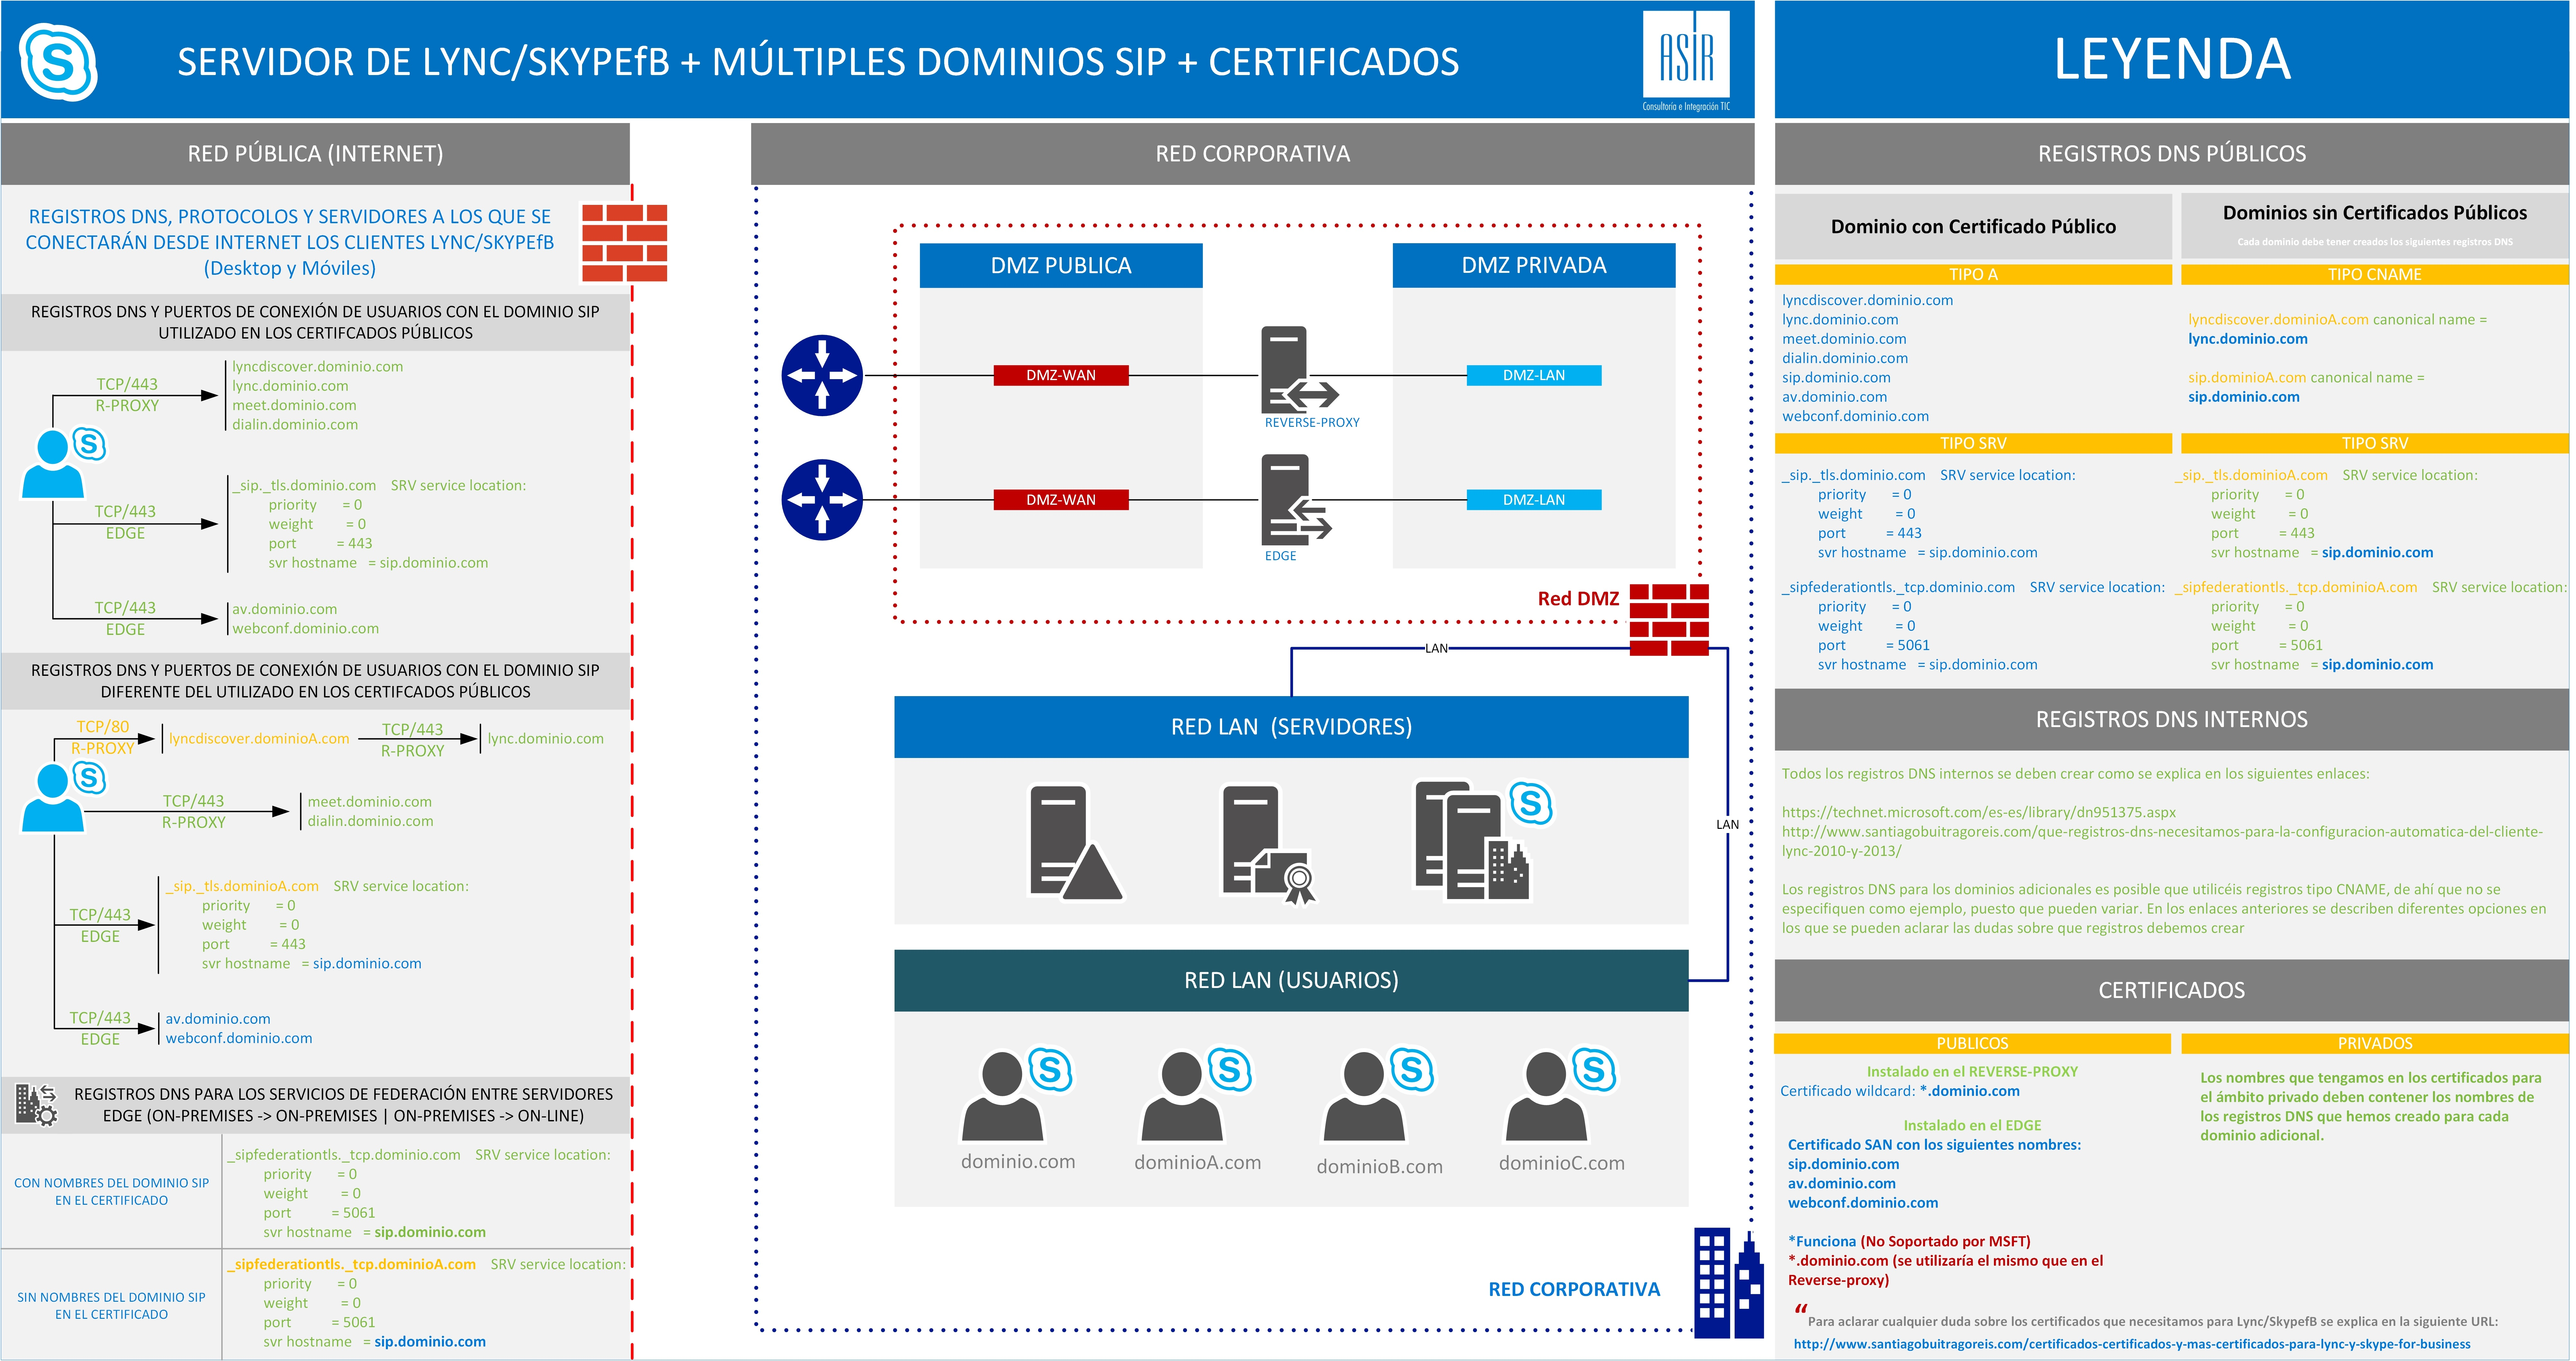 Certificado_Multiples_Dominios_MSFT